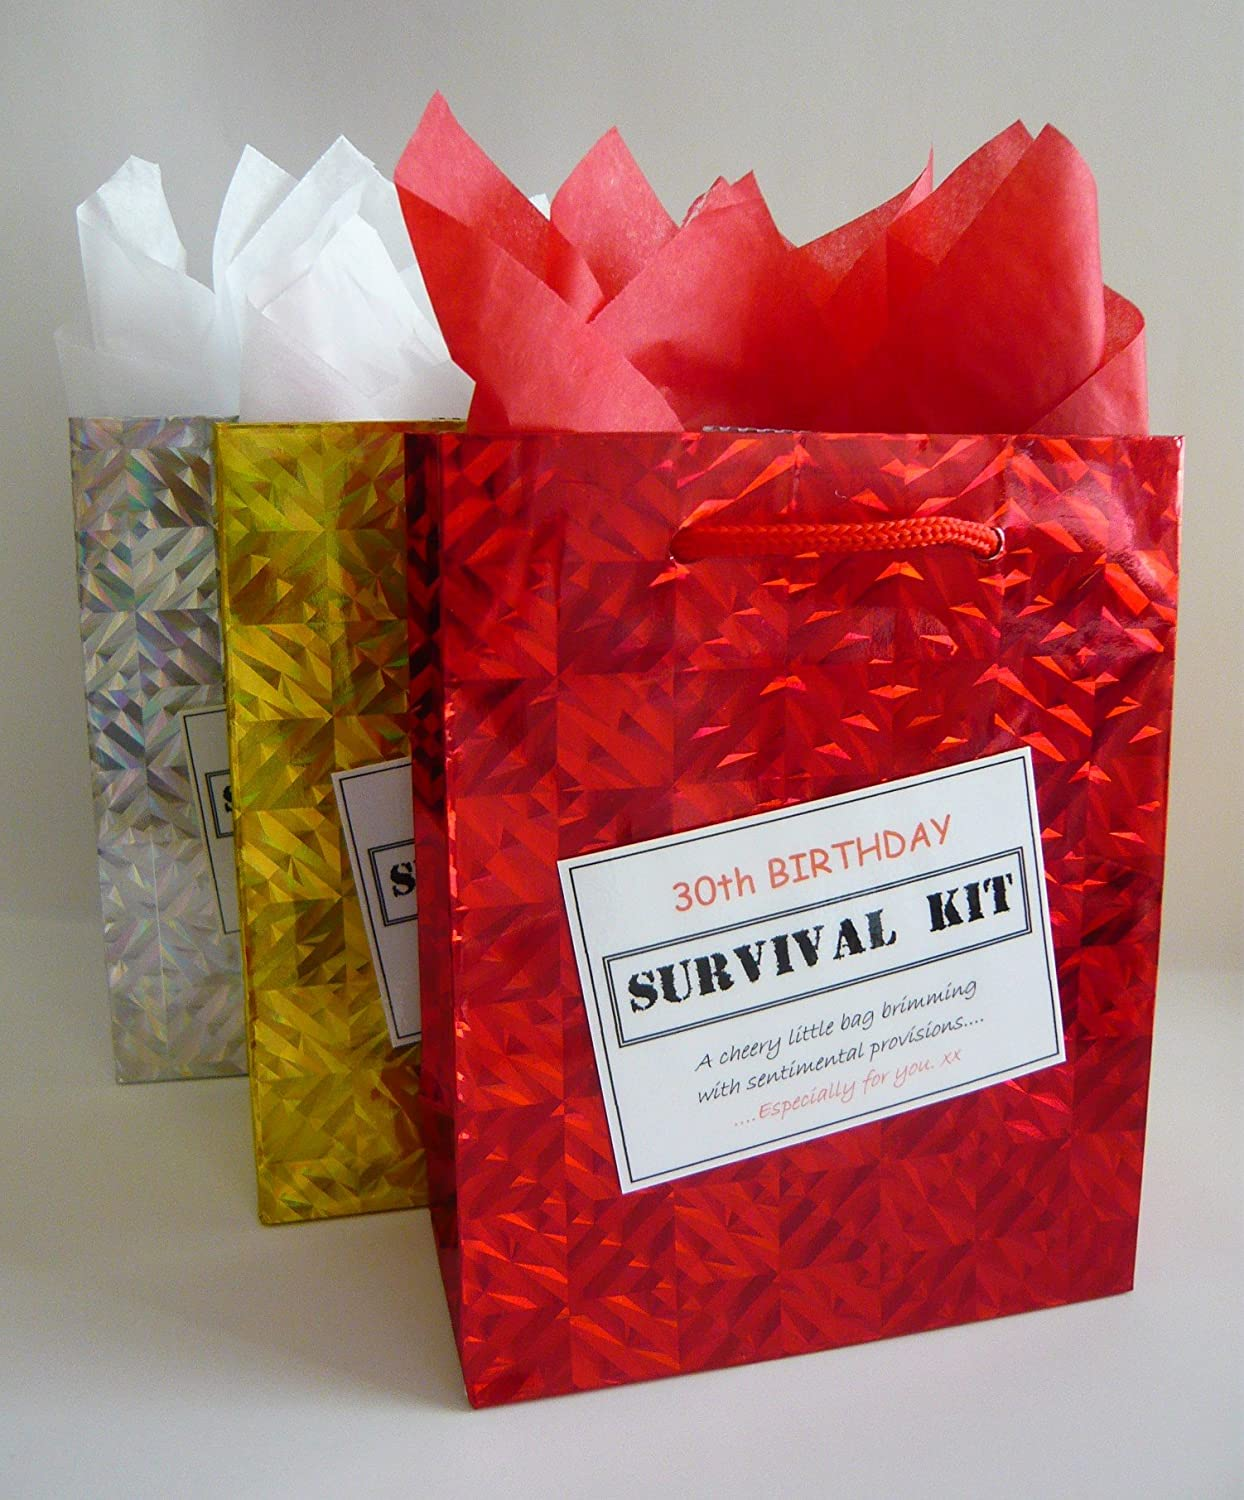 30th Birthday Survival Kit. For Male. Fun Gift Idea. Novelty Present. For Him.: Amazon.co.uk: Office Products